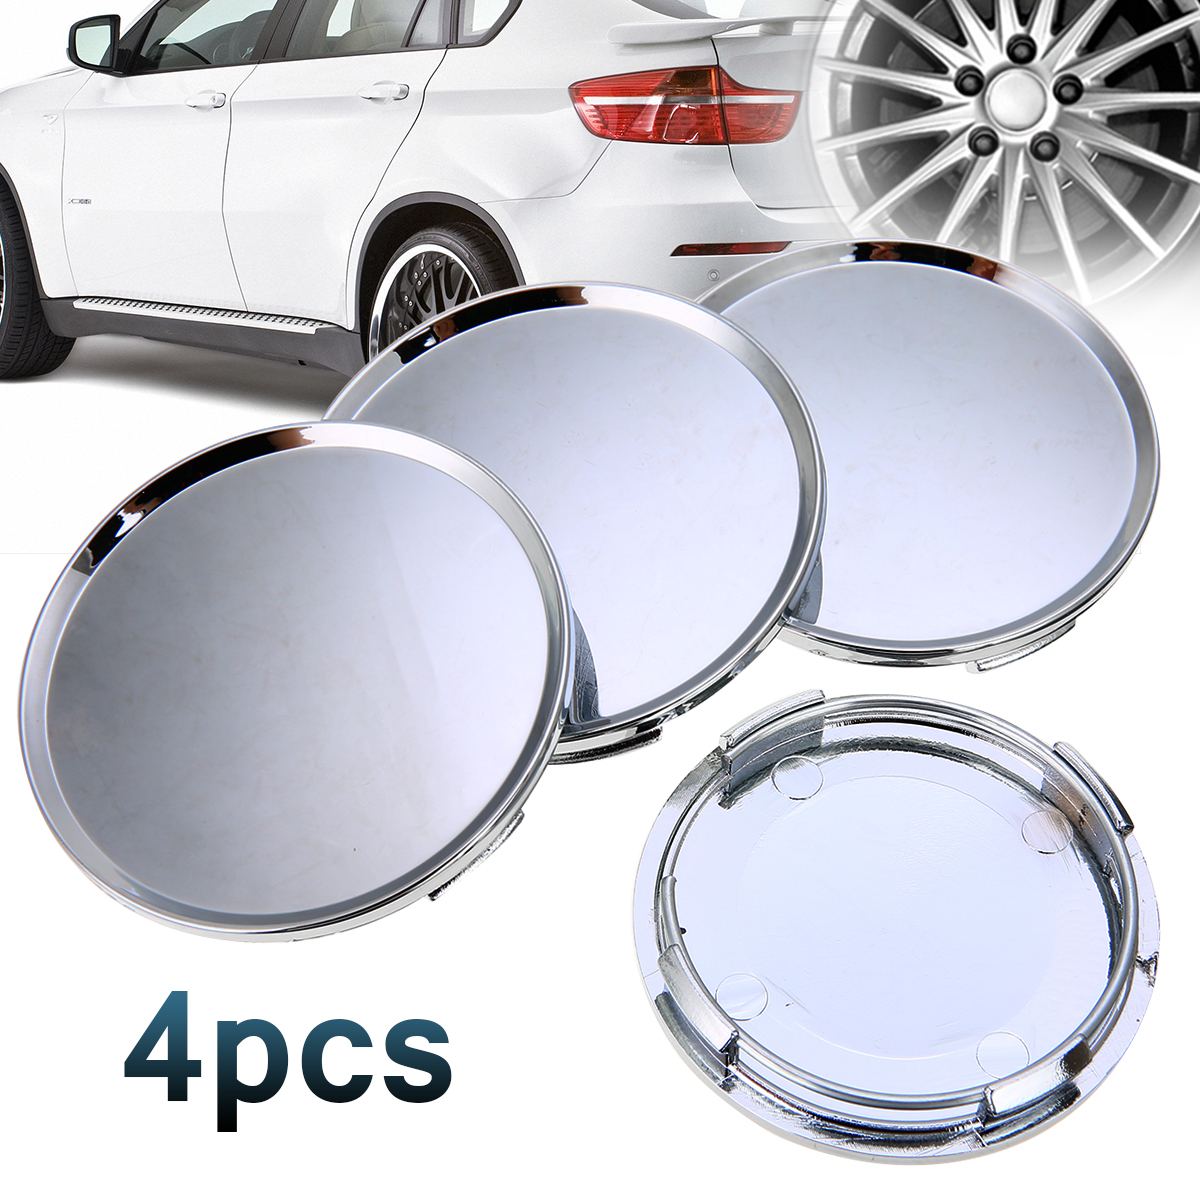 4pcs/set Universal 63mm Car Vehicle Wheel Center Hub Cap Cover Silver For Most Car Trucks Vehicles-in Wheel Center Caps from Automobiles & Motorcycles